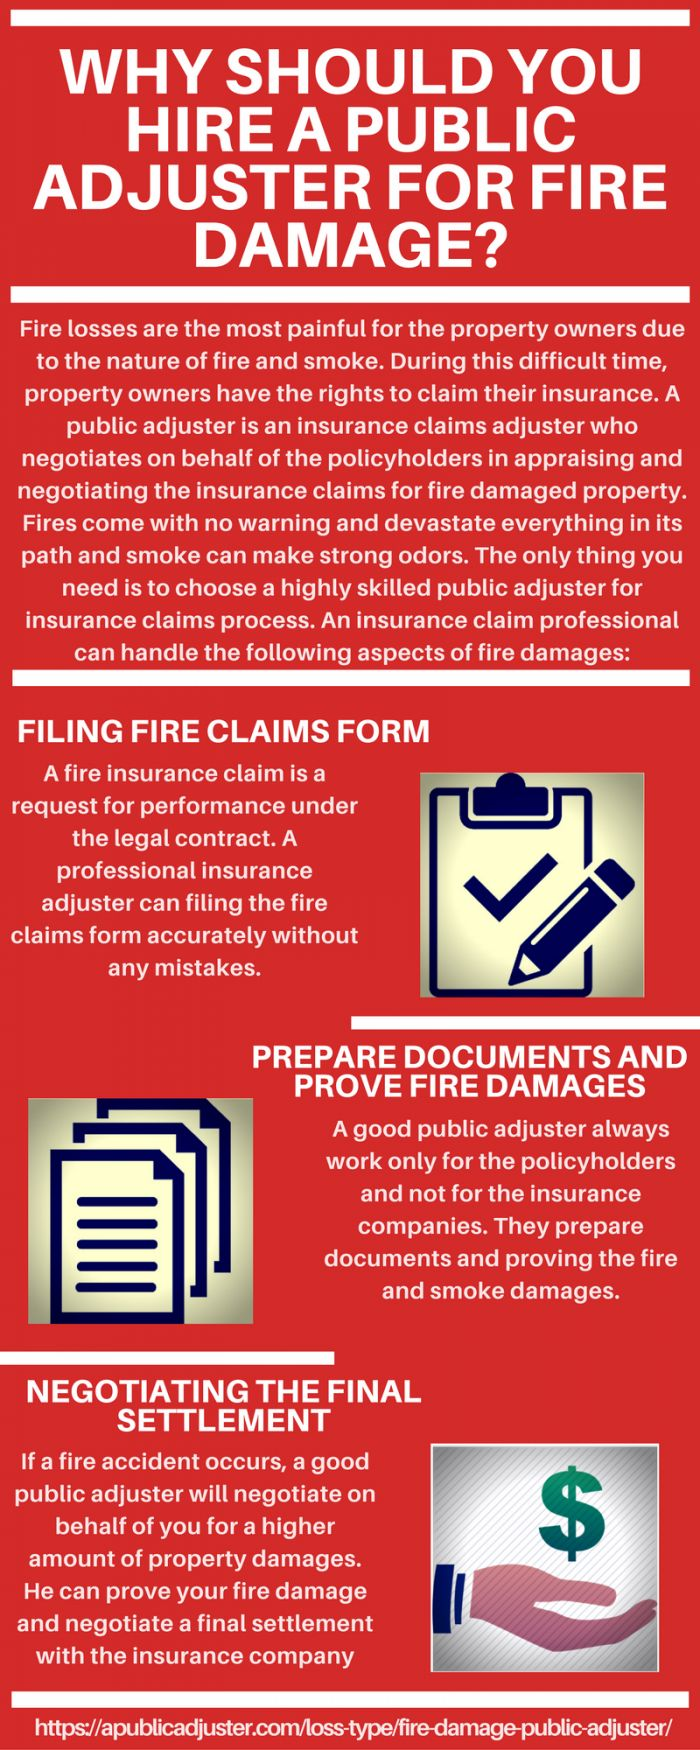 claim for fire insurance An insurance claim is when you have a loss or sustain damage that is caused by a peril insured by your insurance policy your insurance policy provides coverage and compensation to your for covered losses or the damages you sustain by way of you making a claim if you are wondering where you can see.